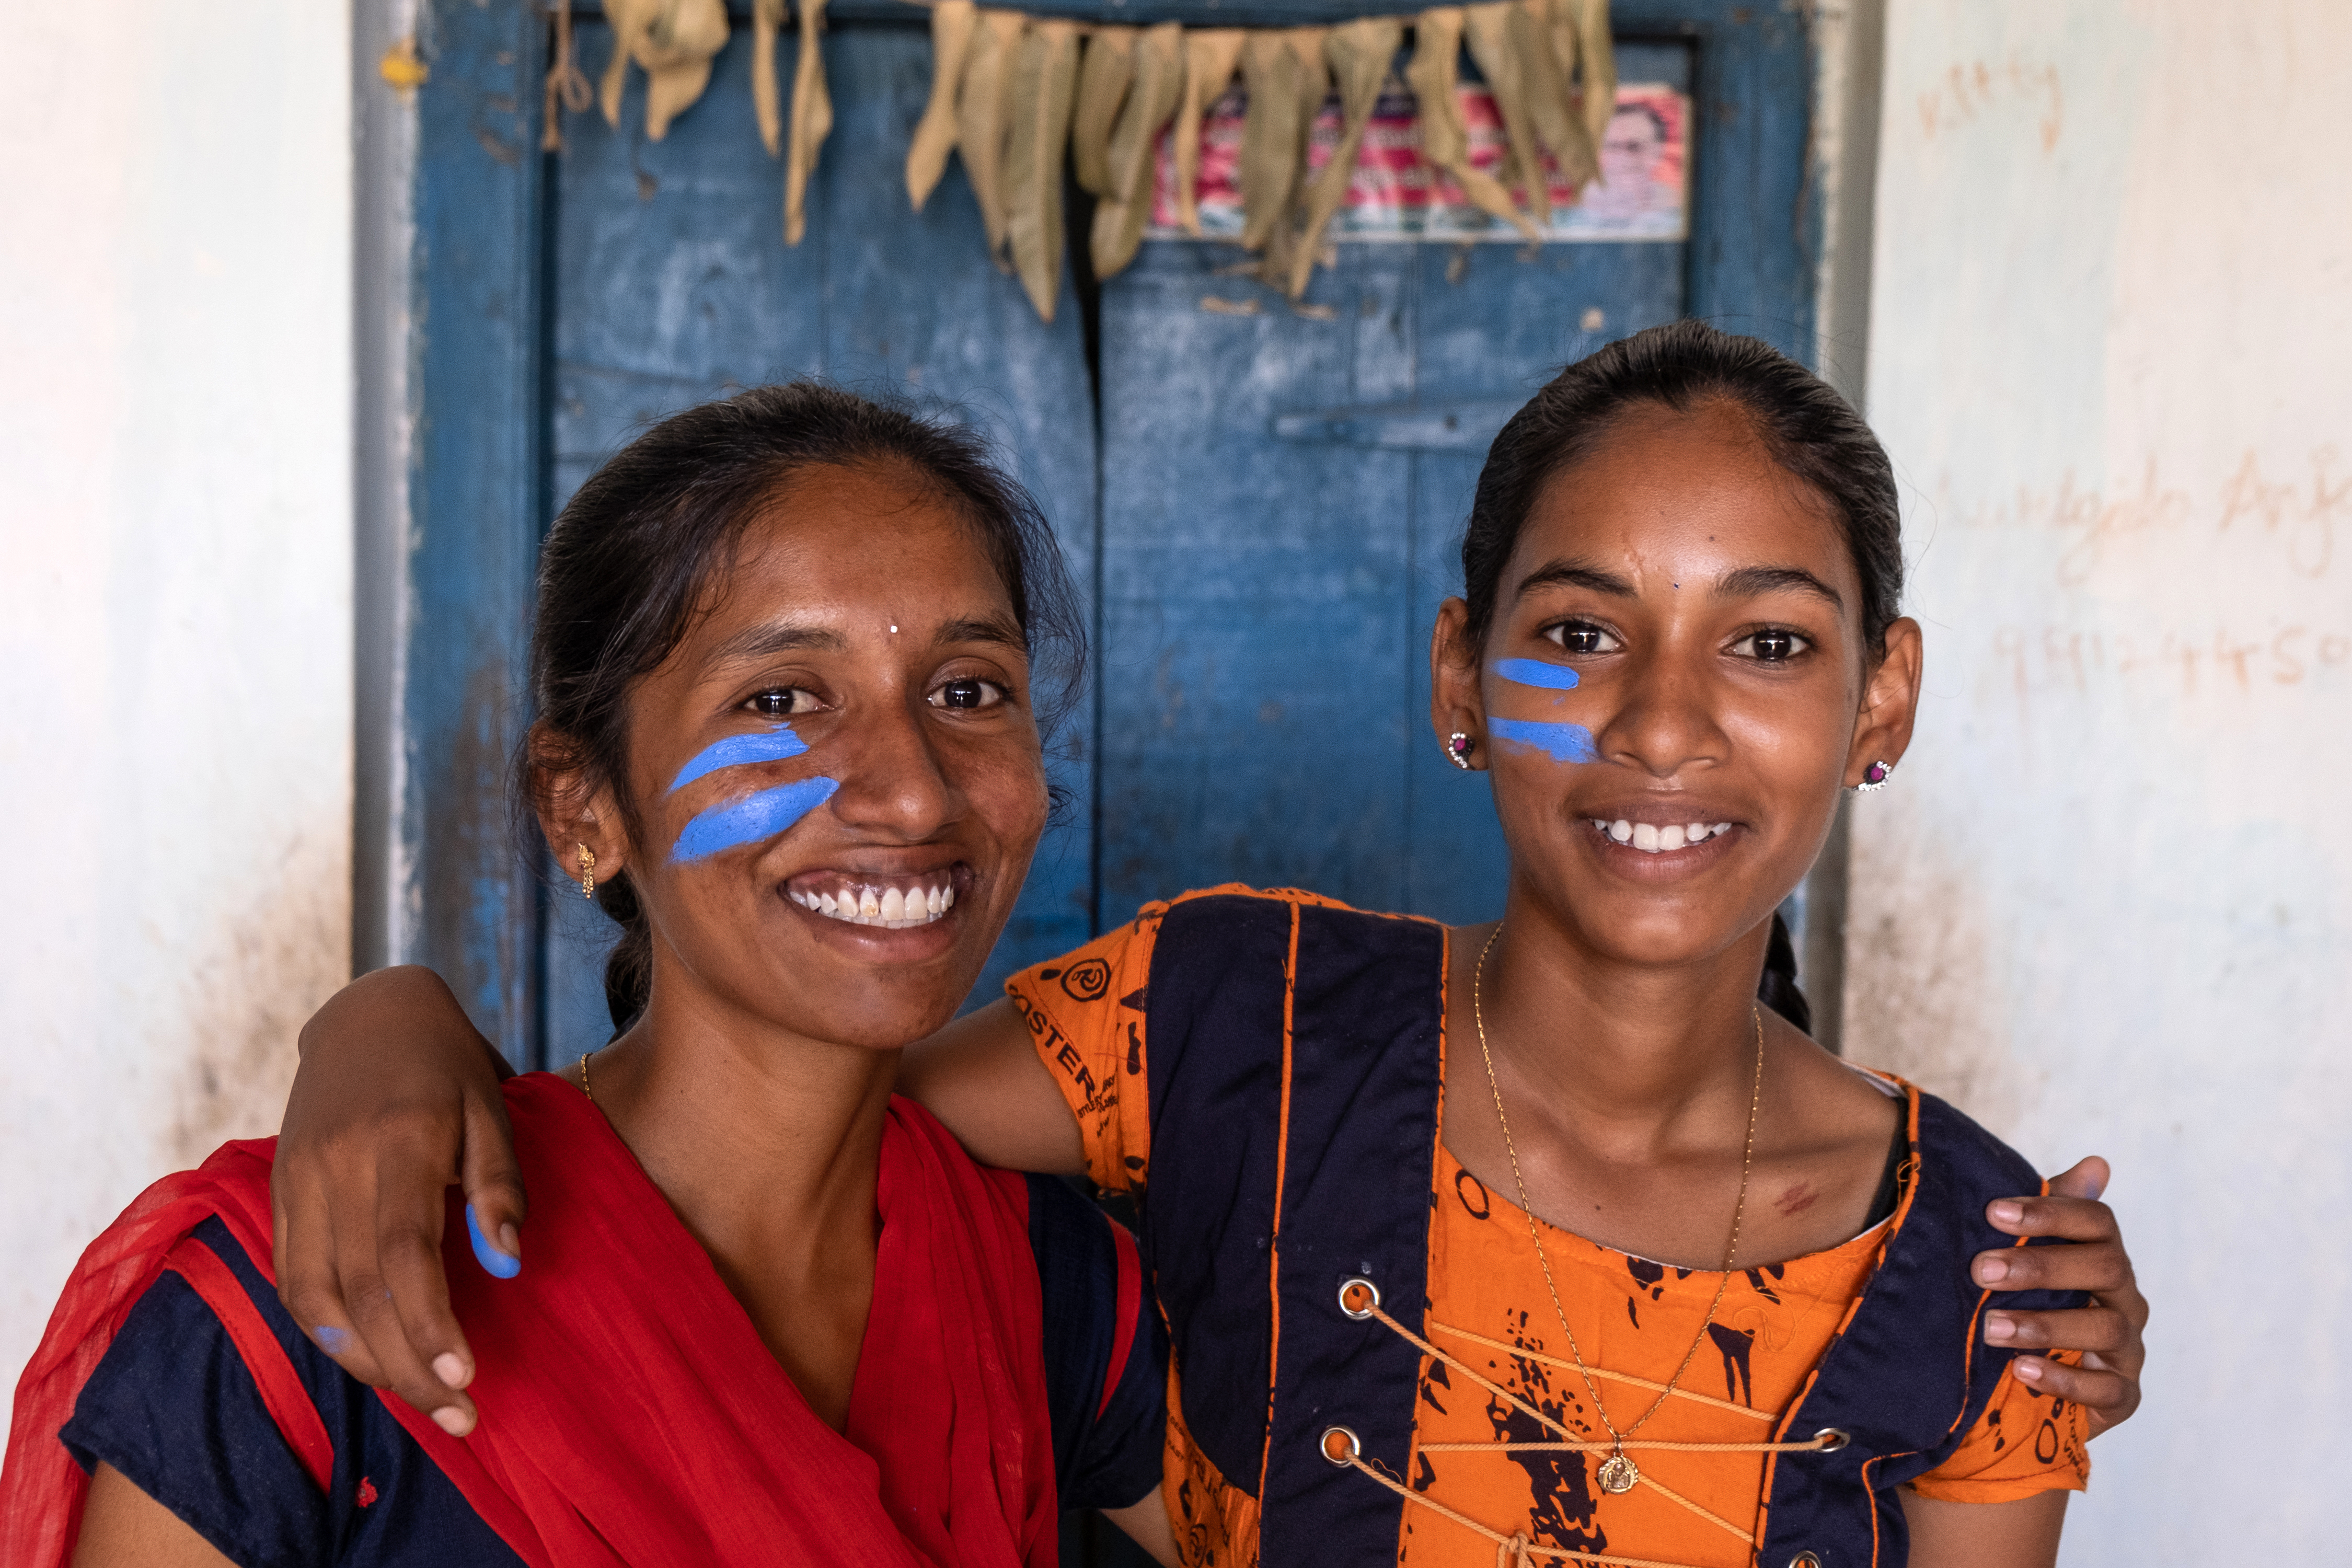 Sangeetha*, 19, lives with her widowed father, sister and grandparents in a remote village in India's Telangana state. Plan International observed that poverty, limited opportunities, and perceptions of protecting traditions and family honour – all continue to fuel the practice of child marriage among local communities.